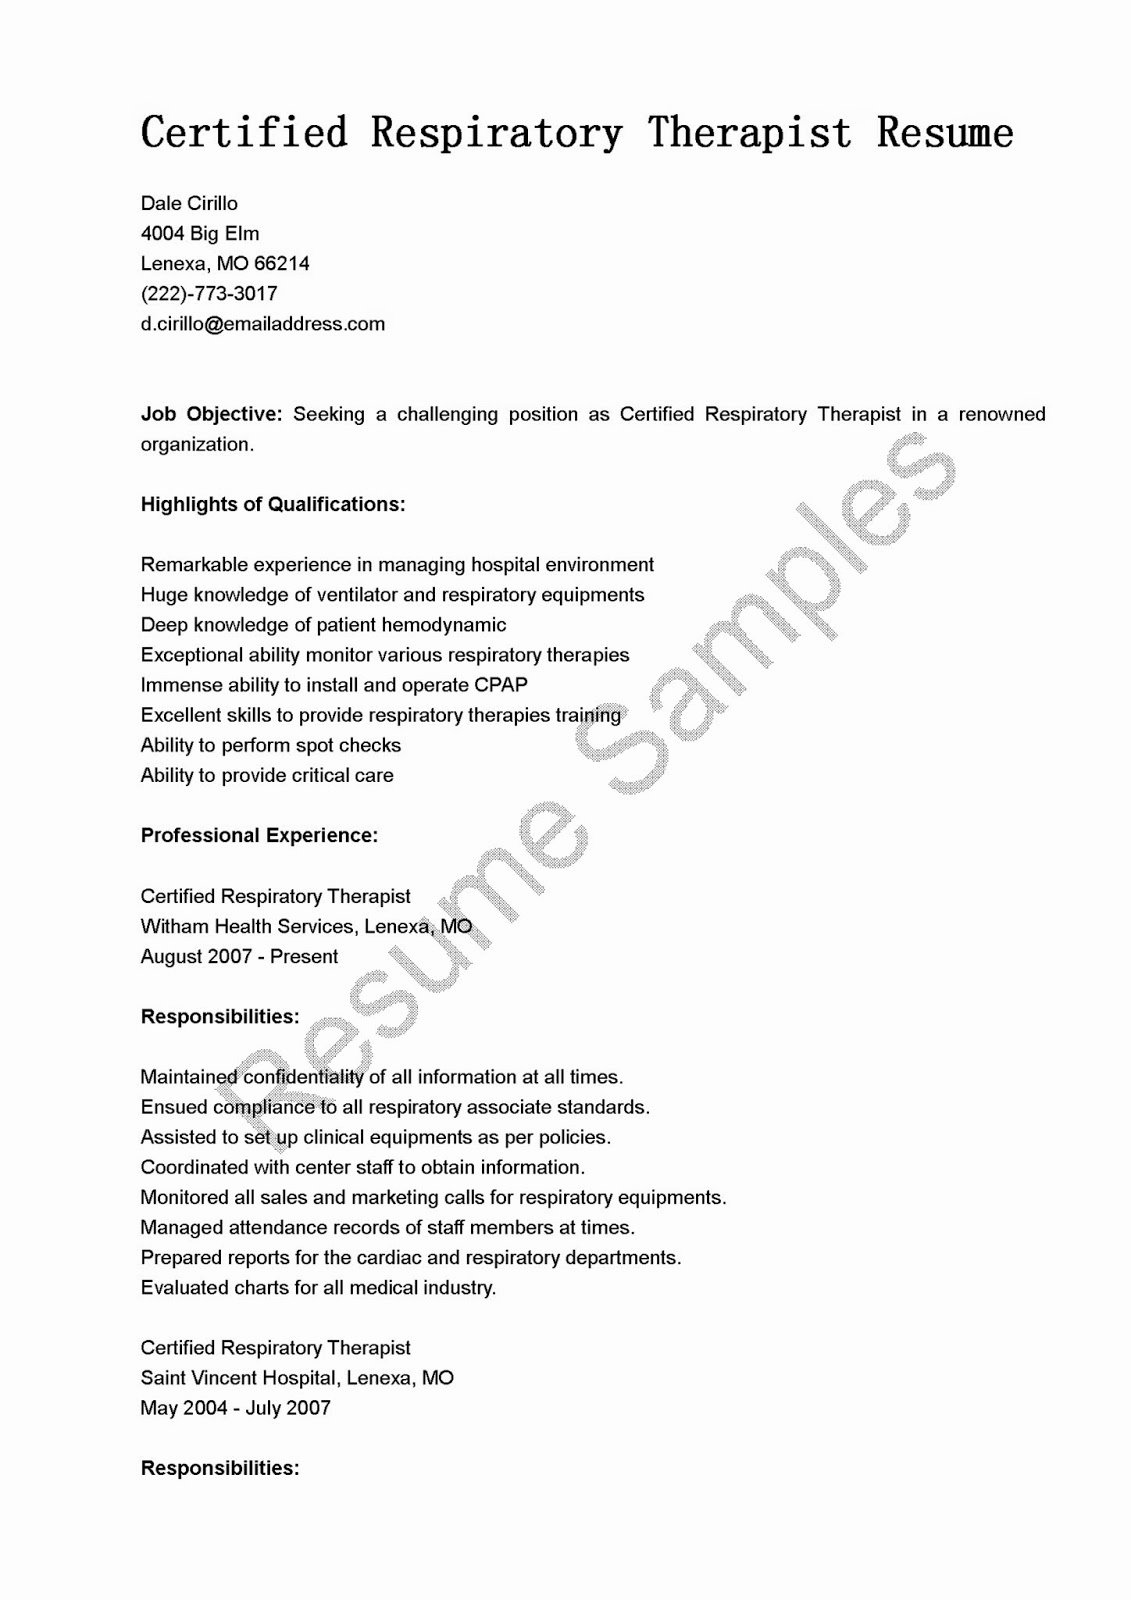 Resume Samples Certified Respiratory therapist Resume Sample